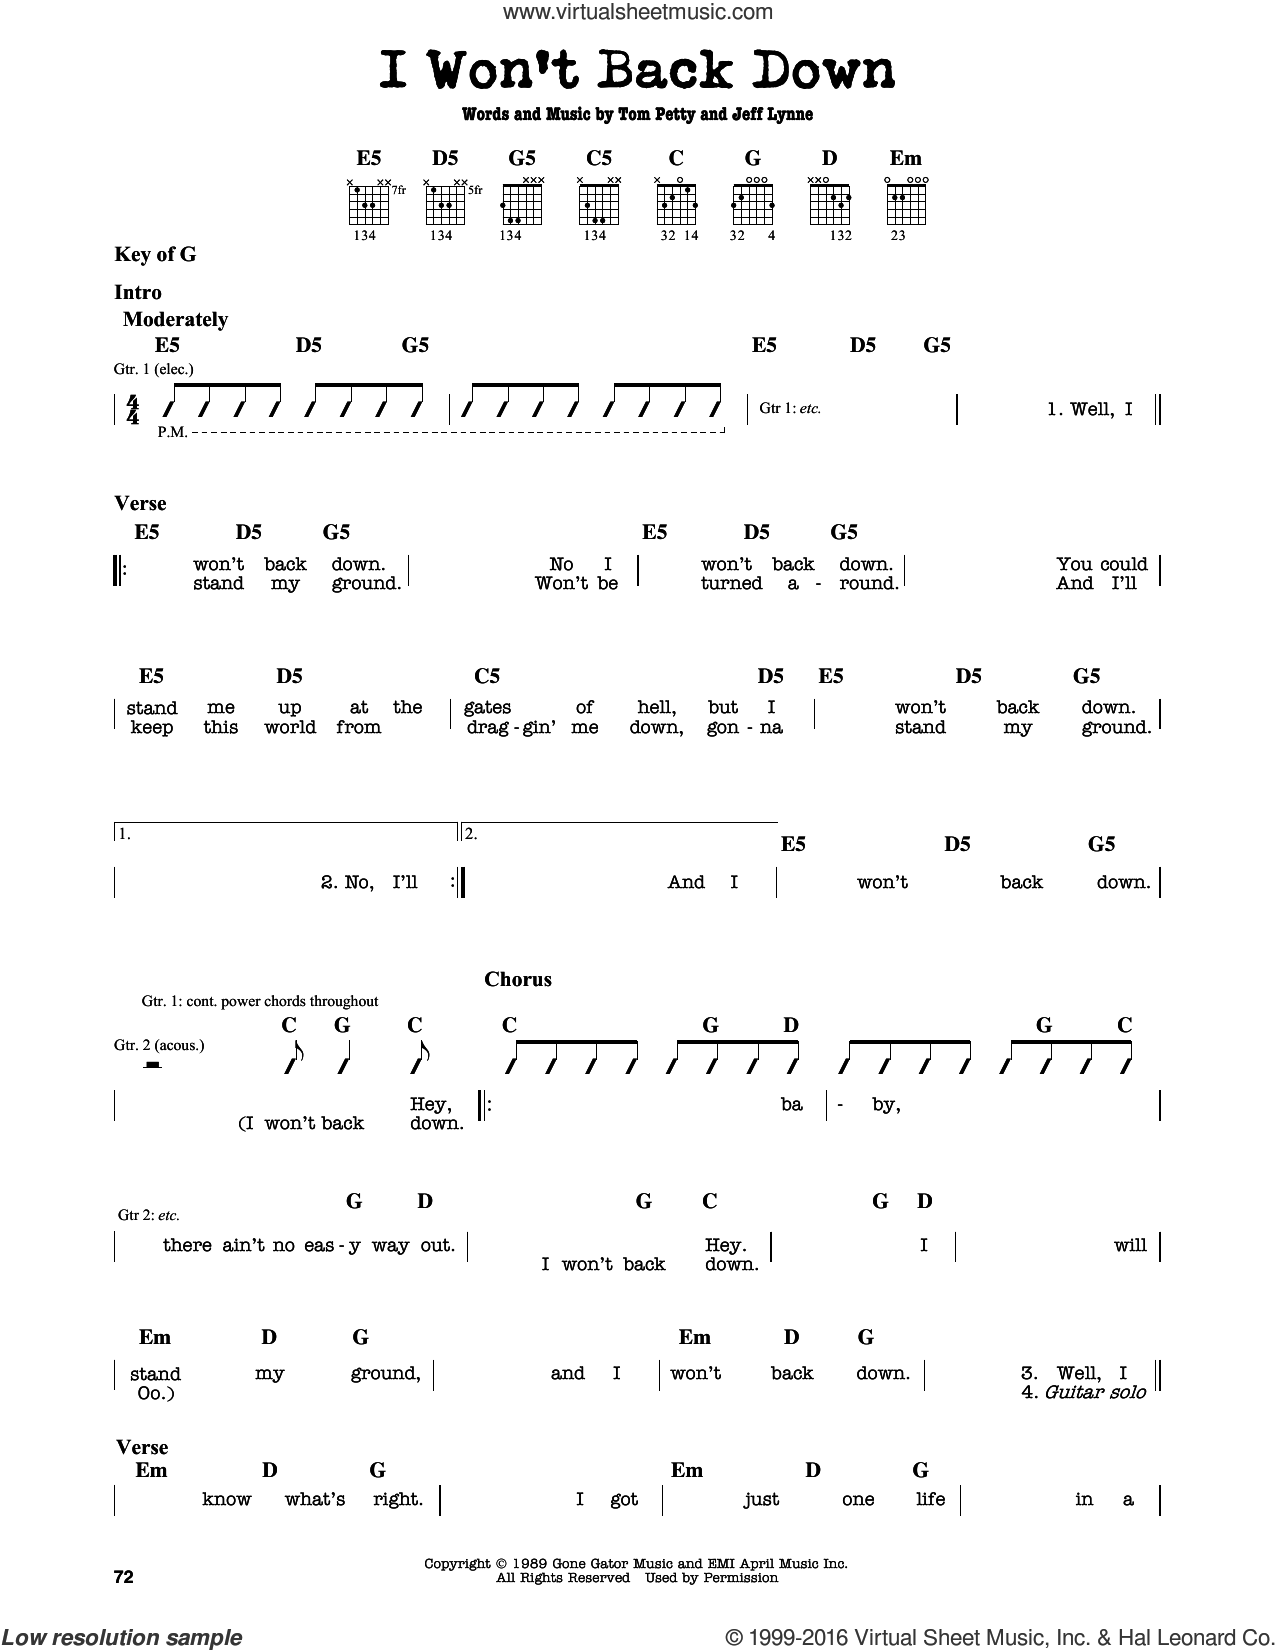 I Won't Back Down sheet music for guitar solo (lead sheet) by Tom Petty and Jeff Lynne, intermediate guitar (lead sheet)